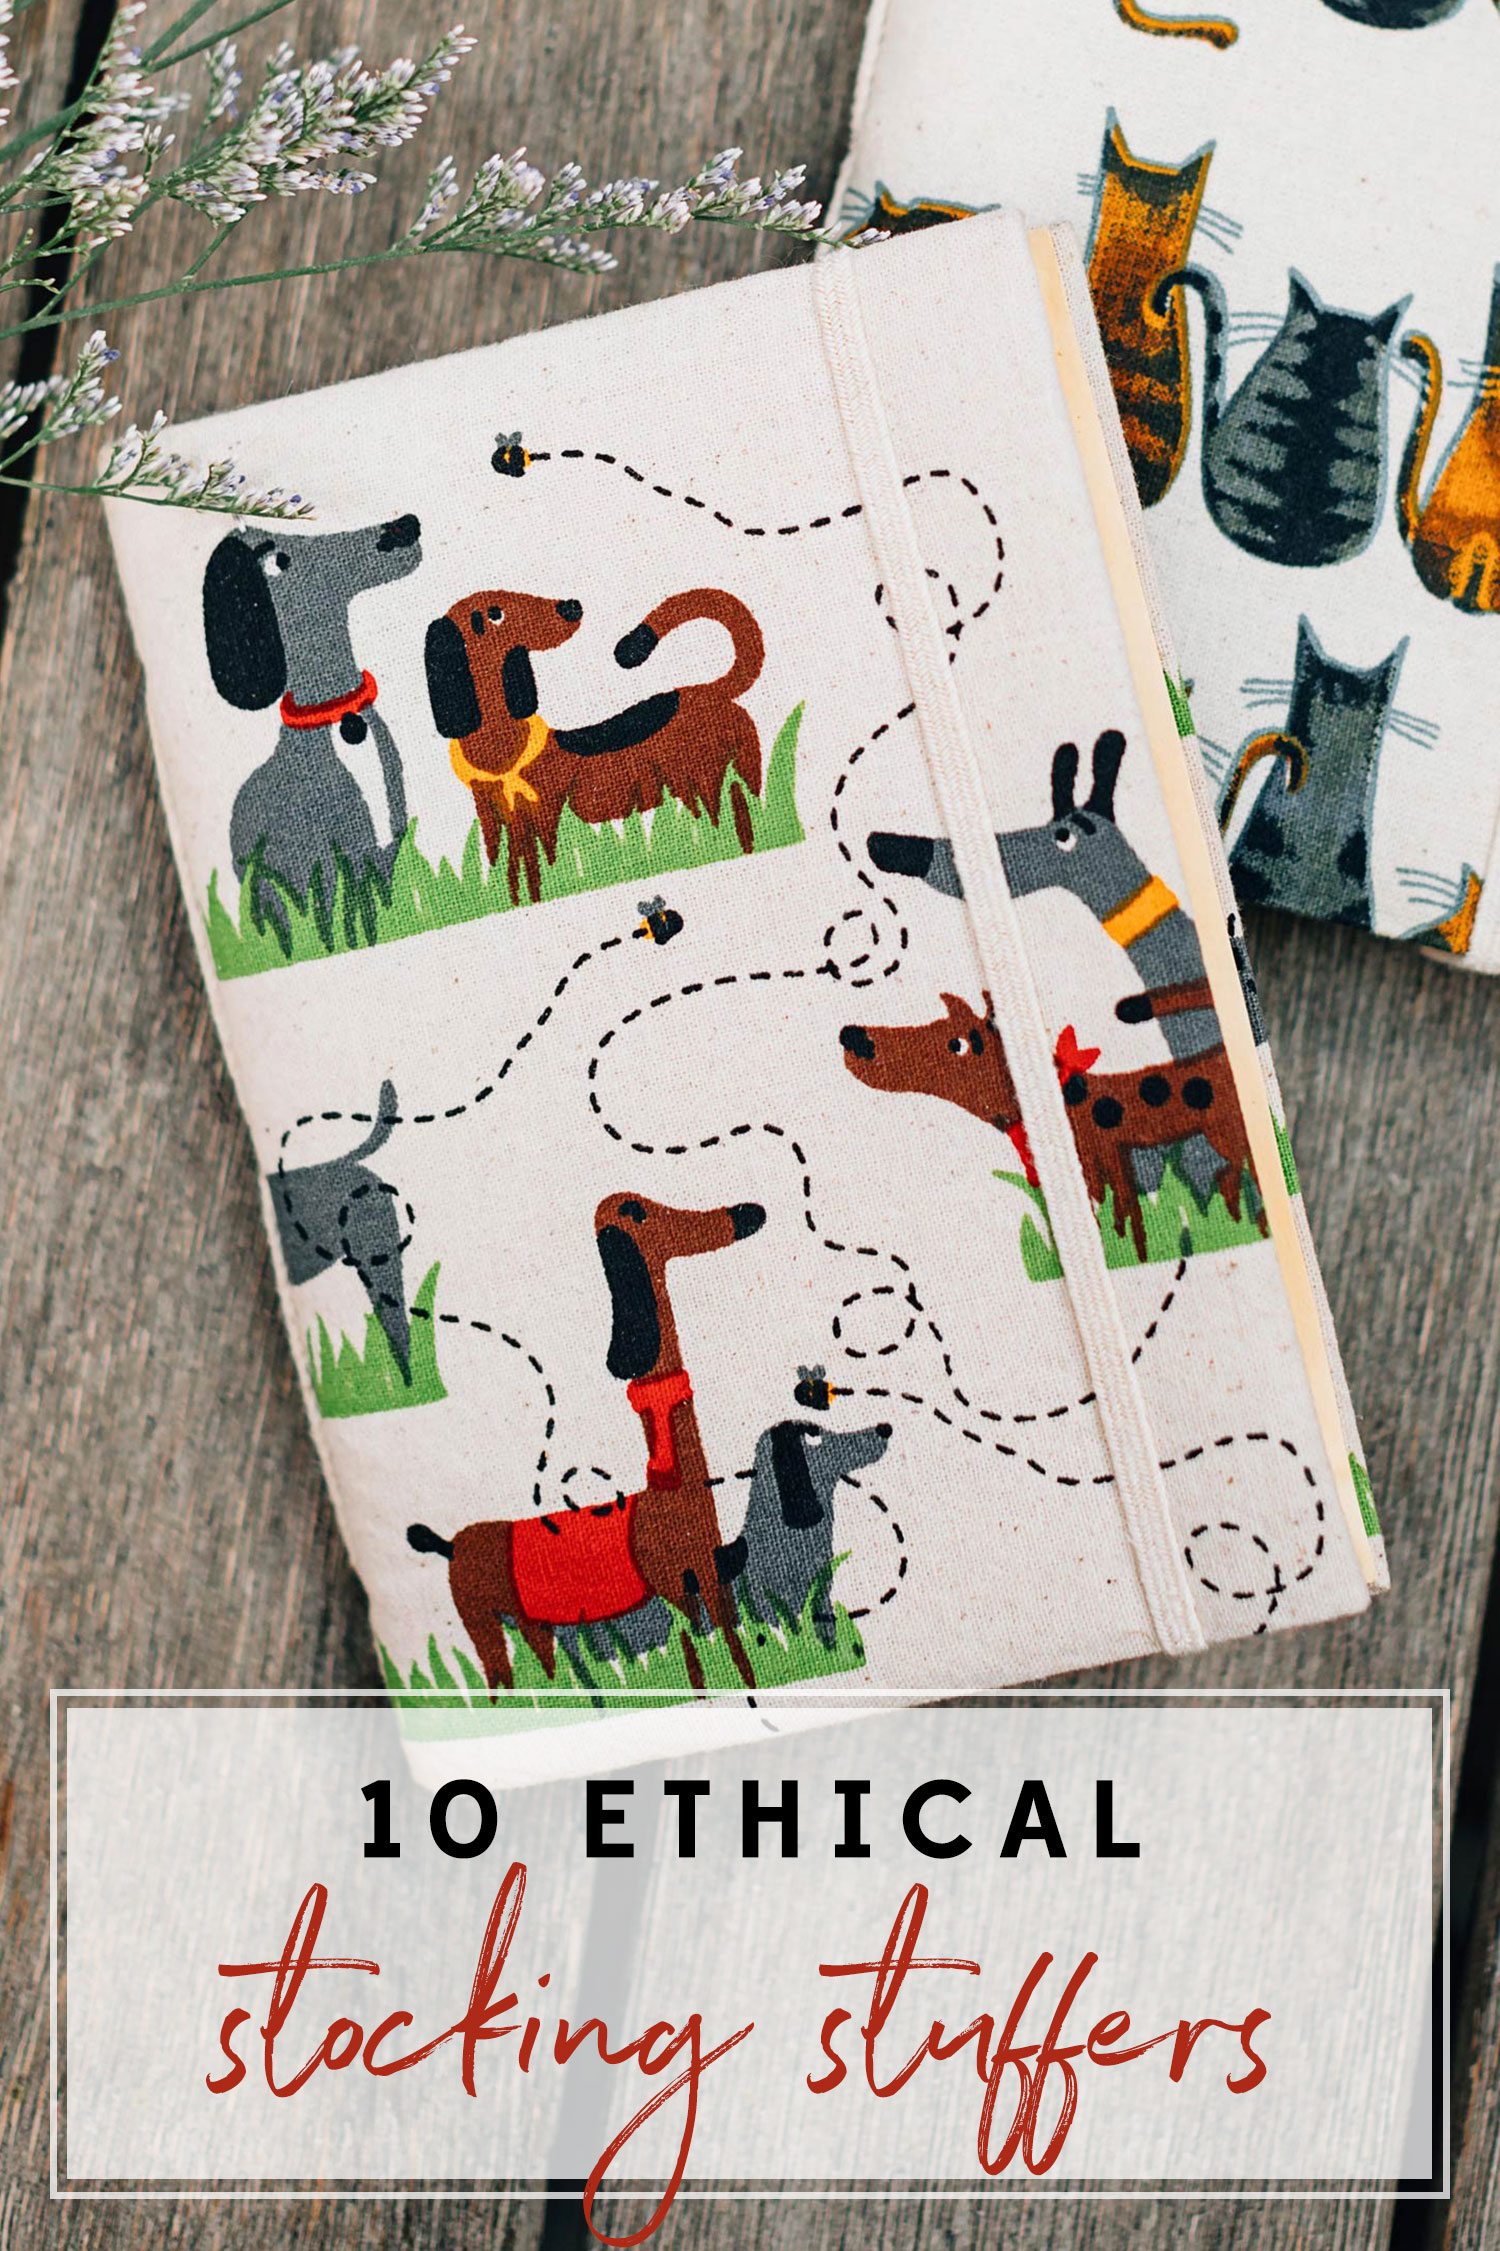 10 Ethical Stocking Stuffers | Wandering Thoughts Journal